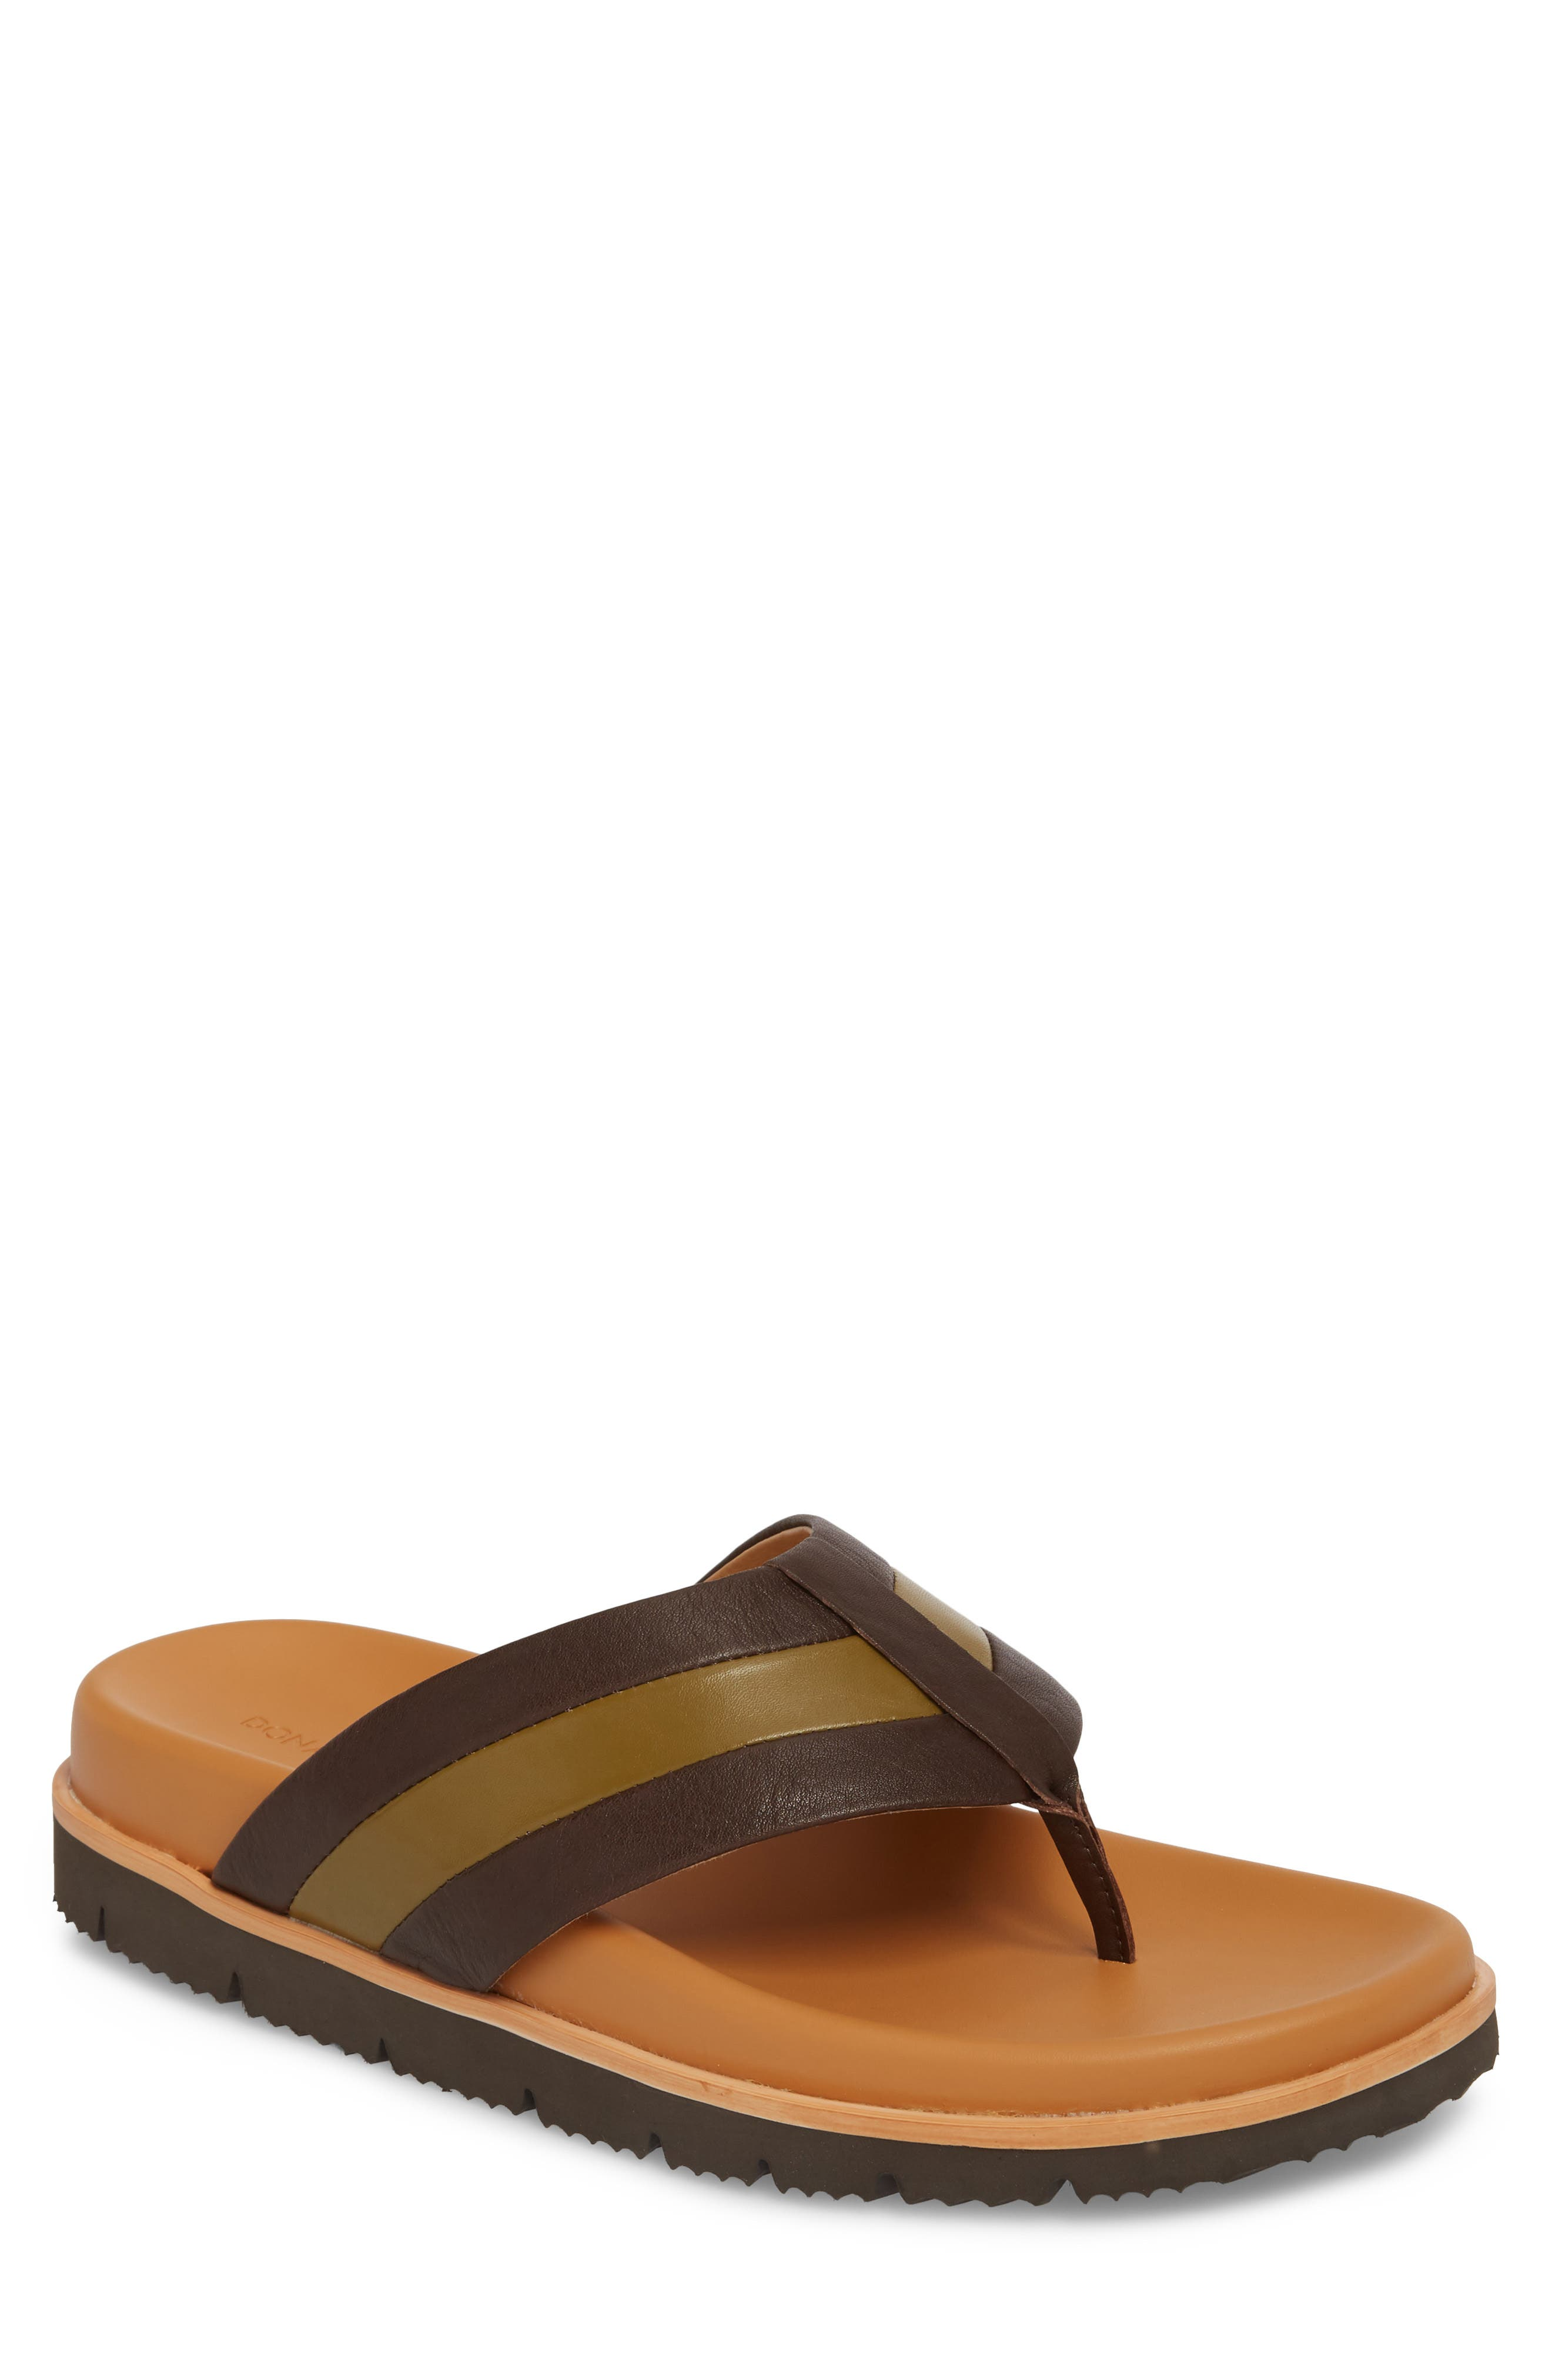 Bryce Striped Flip Flop,                             Main thumbnail 1, color,                             Brown/ Tan Leather